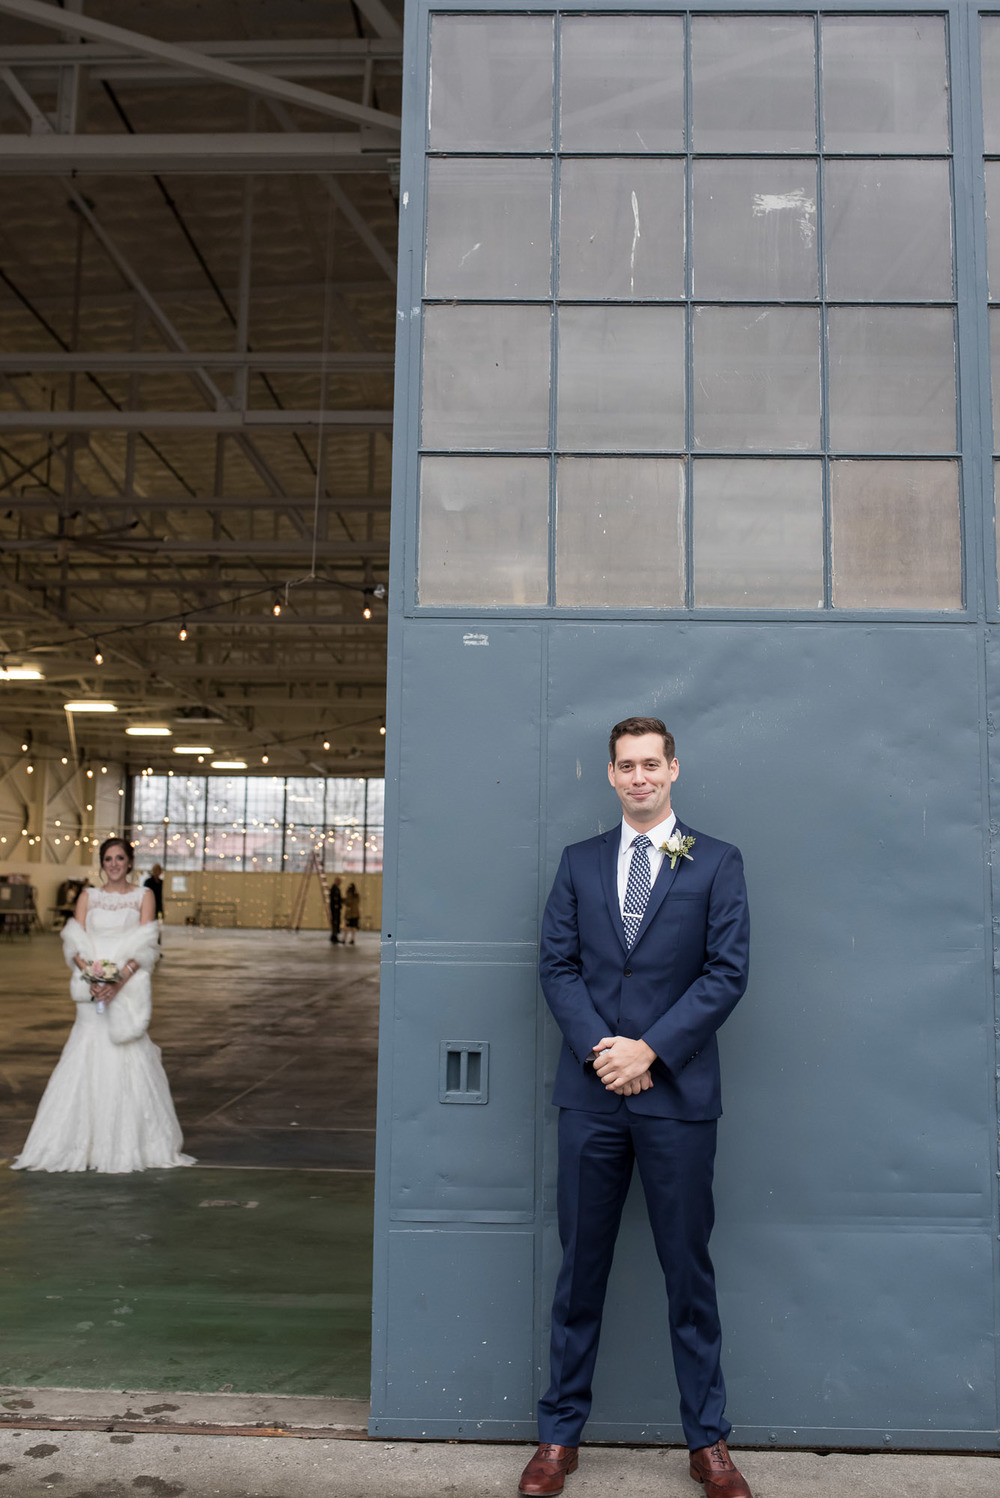 Hangar-30-wedding-Seattle-011.jpg